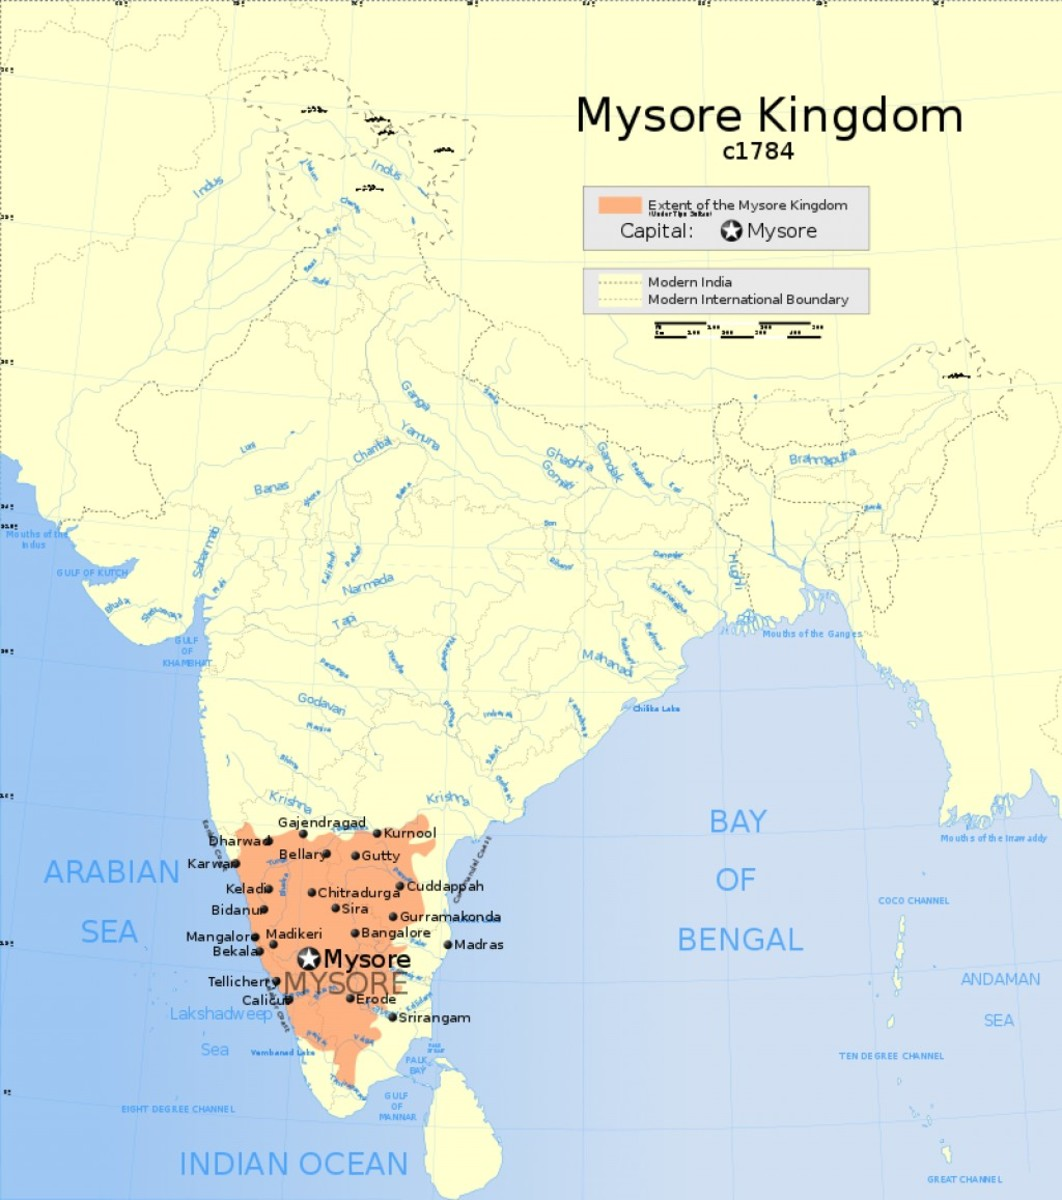 The Kingdom of Mysore at its greatest extent.